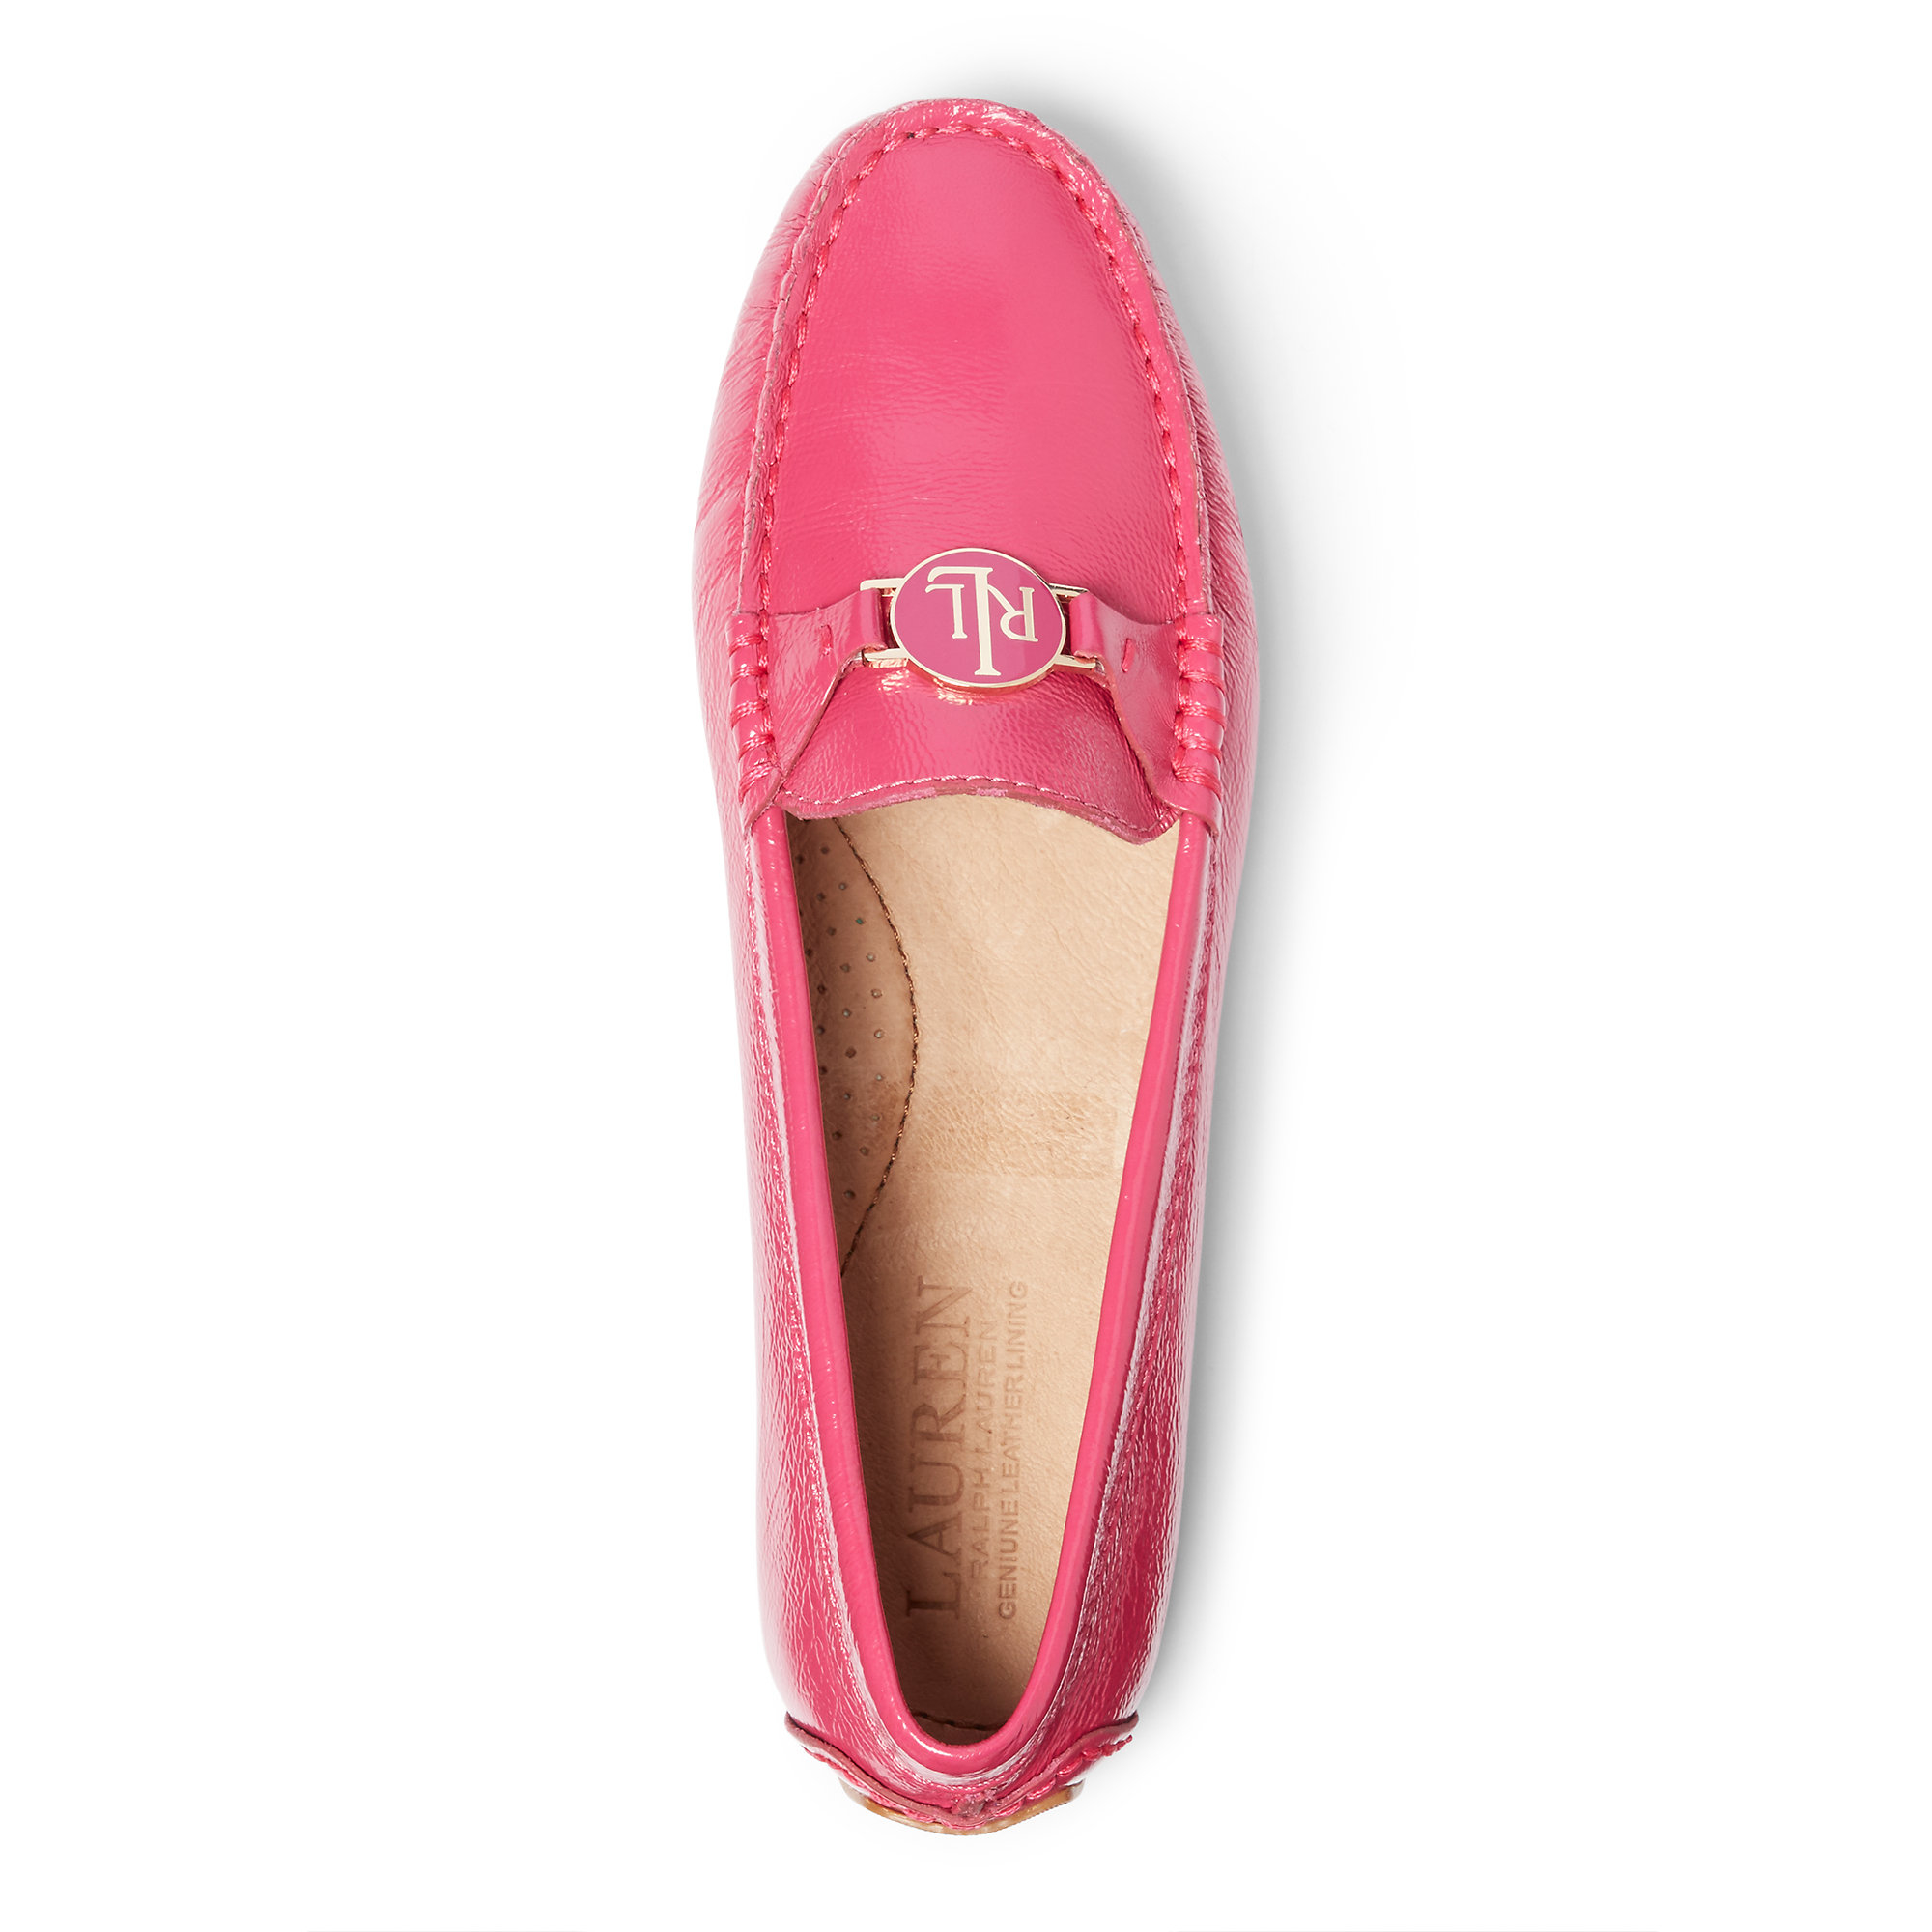 e80e102b35d Lyst - Pink Pony Carley Patent Leather Loafer in Pink